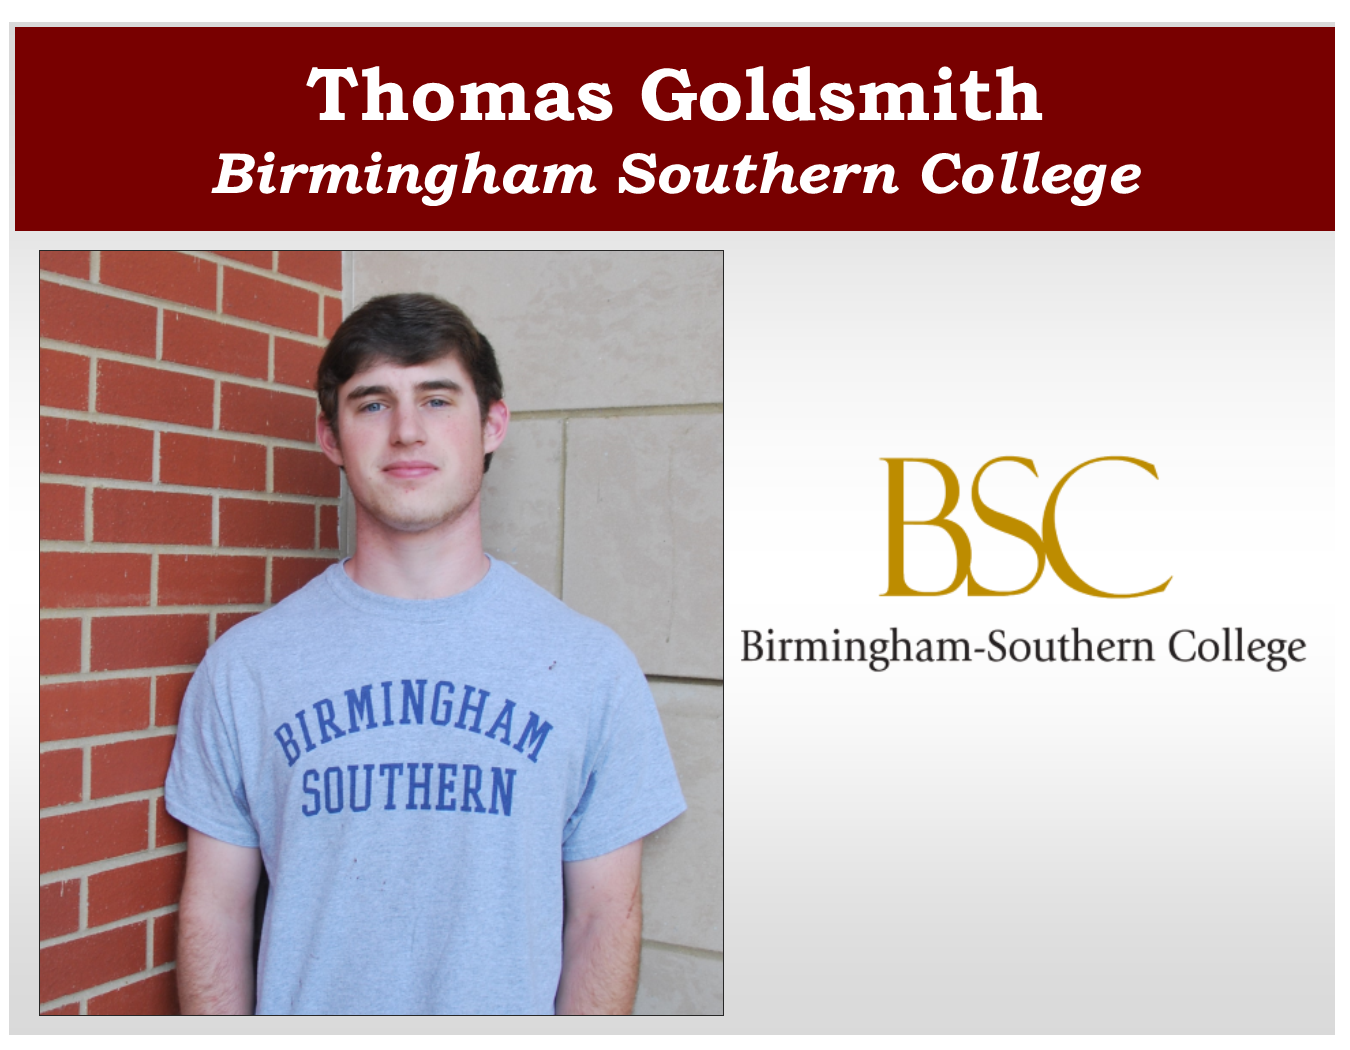 Thomas Goldsmith